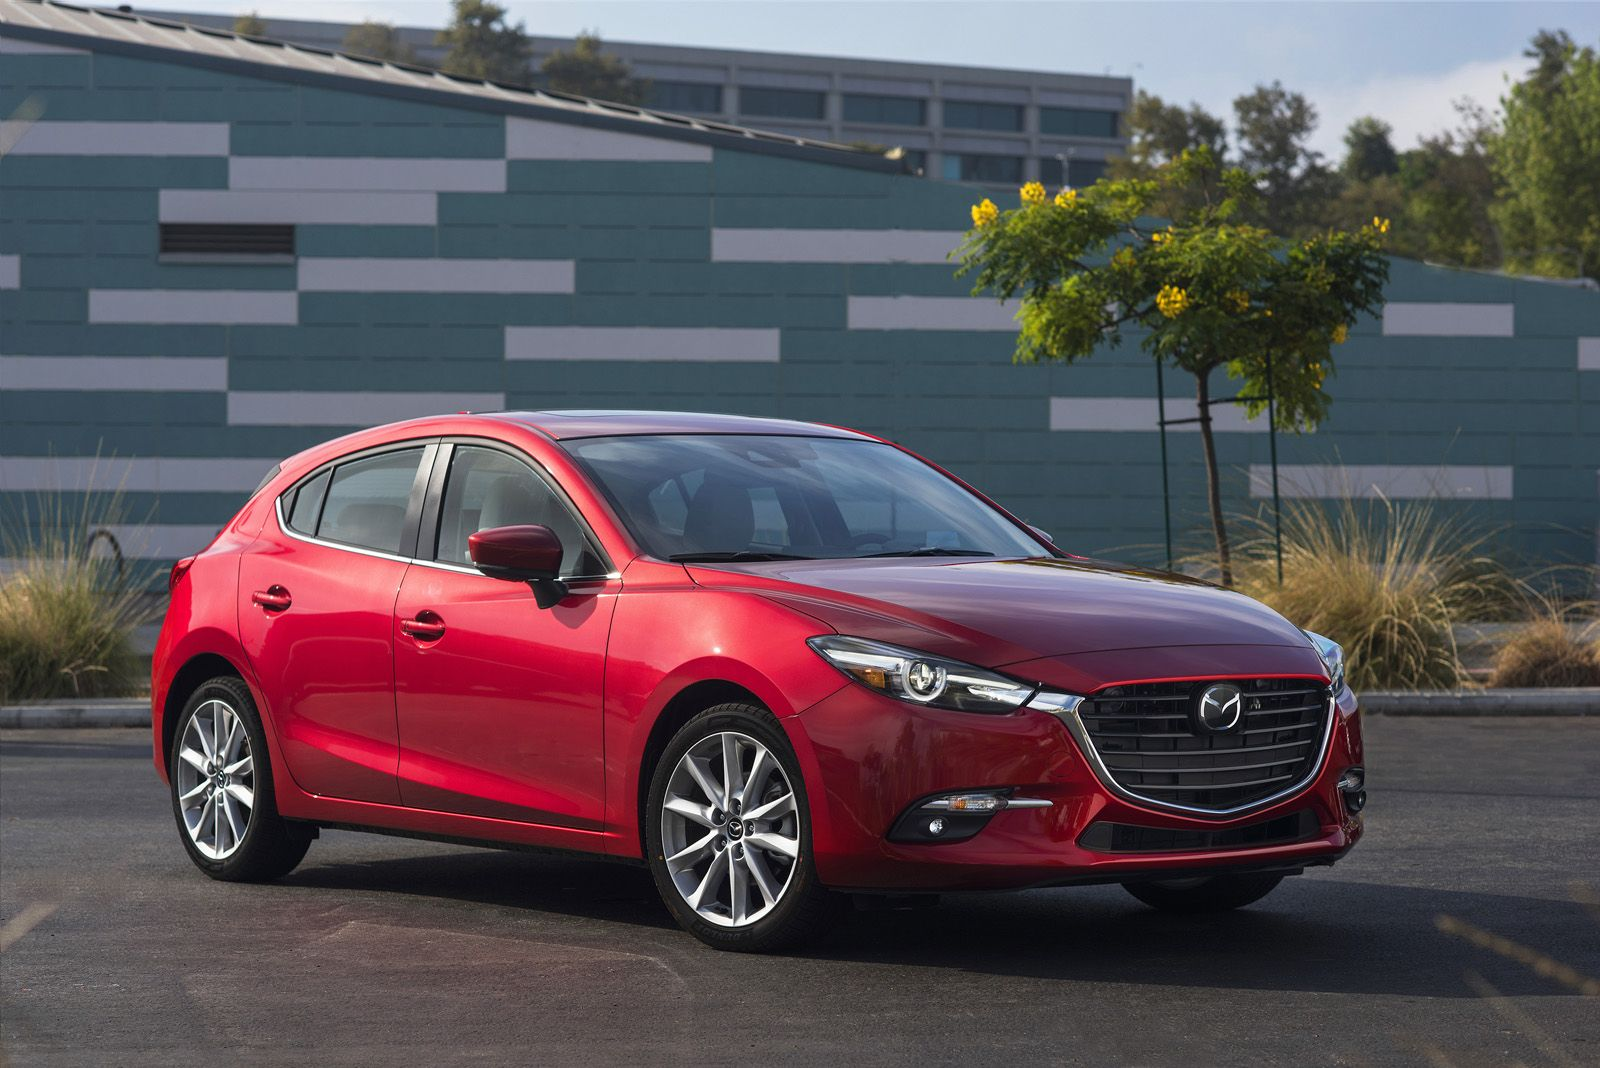 The mazda3 is back for 2017 with a host of minor upgrades chief among them